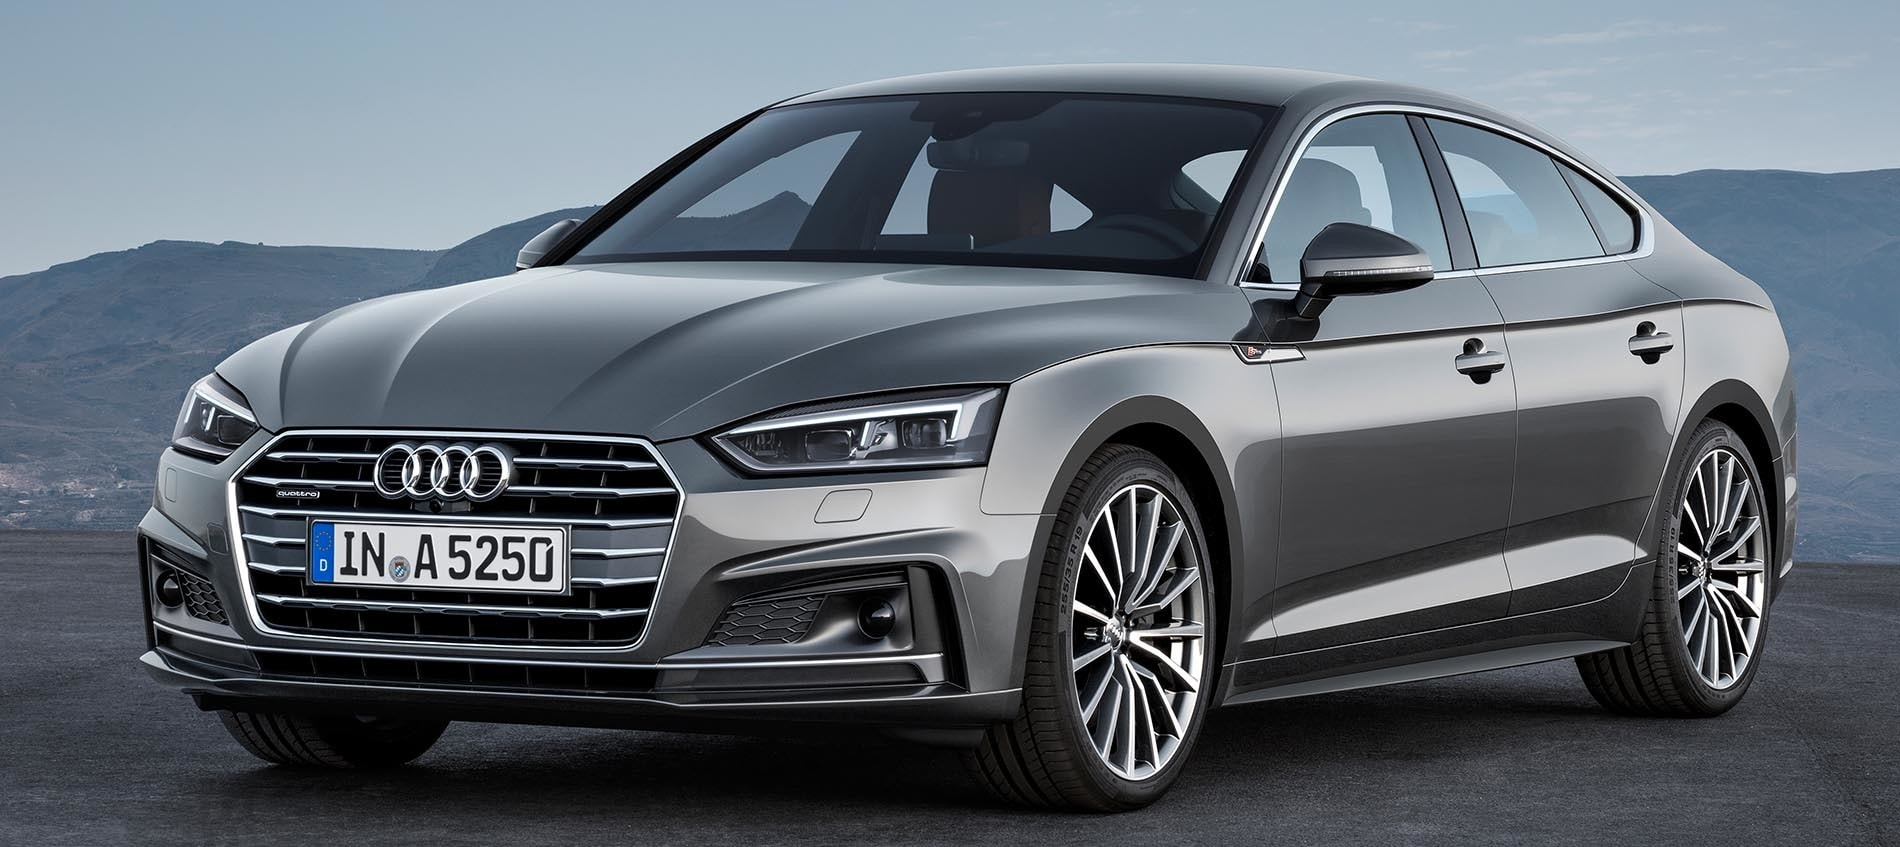 hight resolution of is the new audi a5 worth the rs 7 25 million pricetag business dawn com